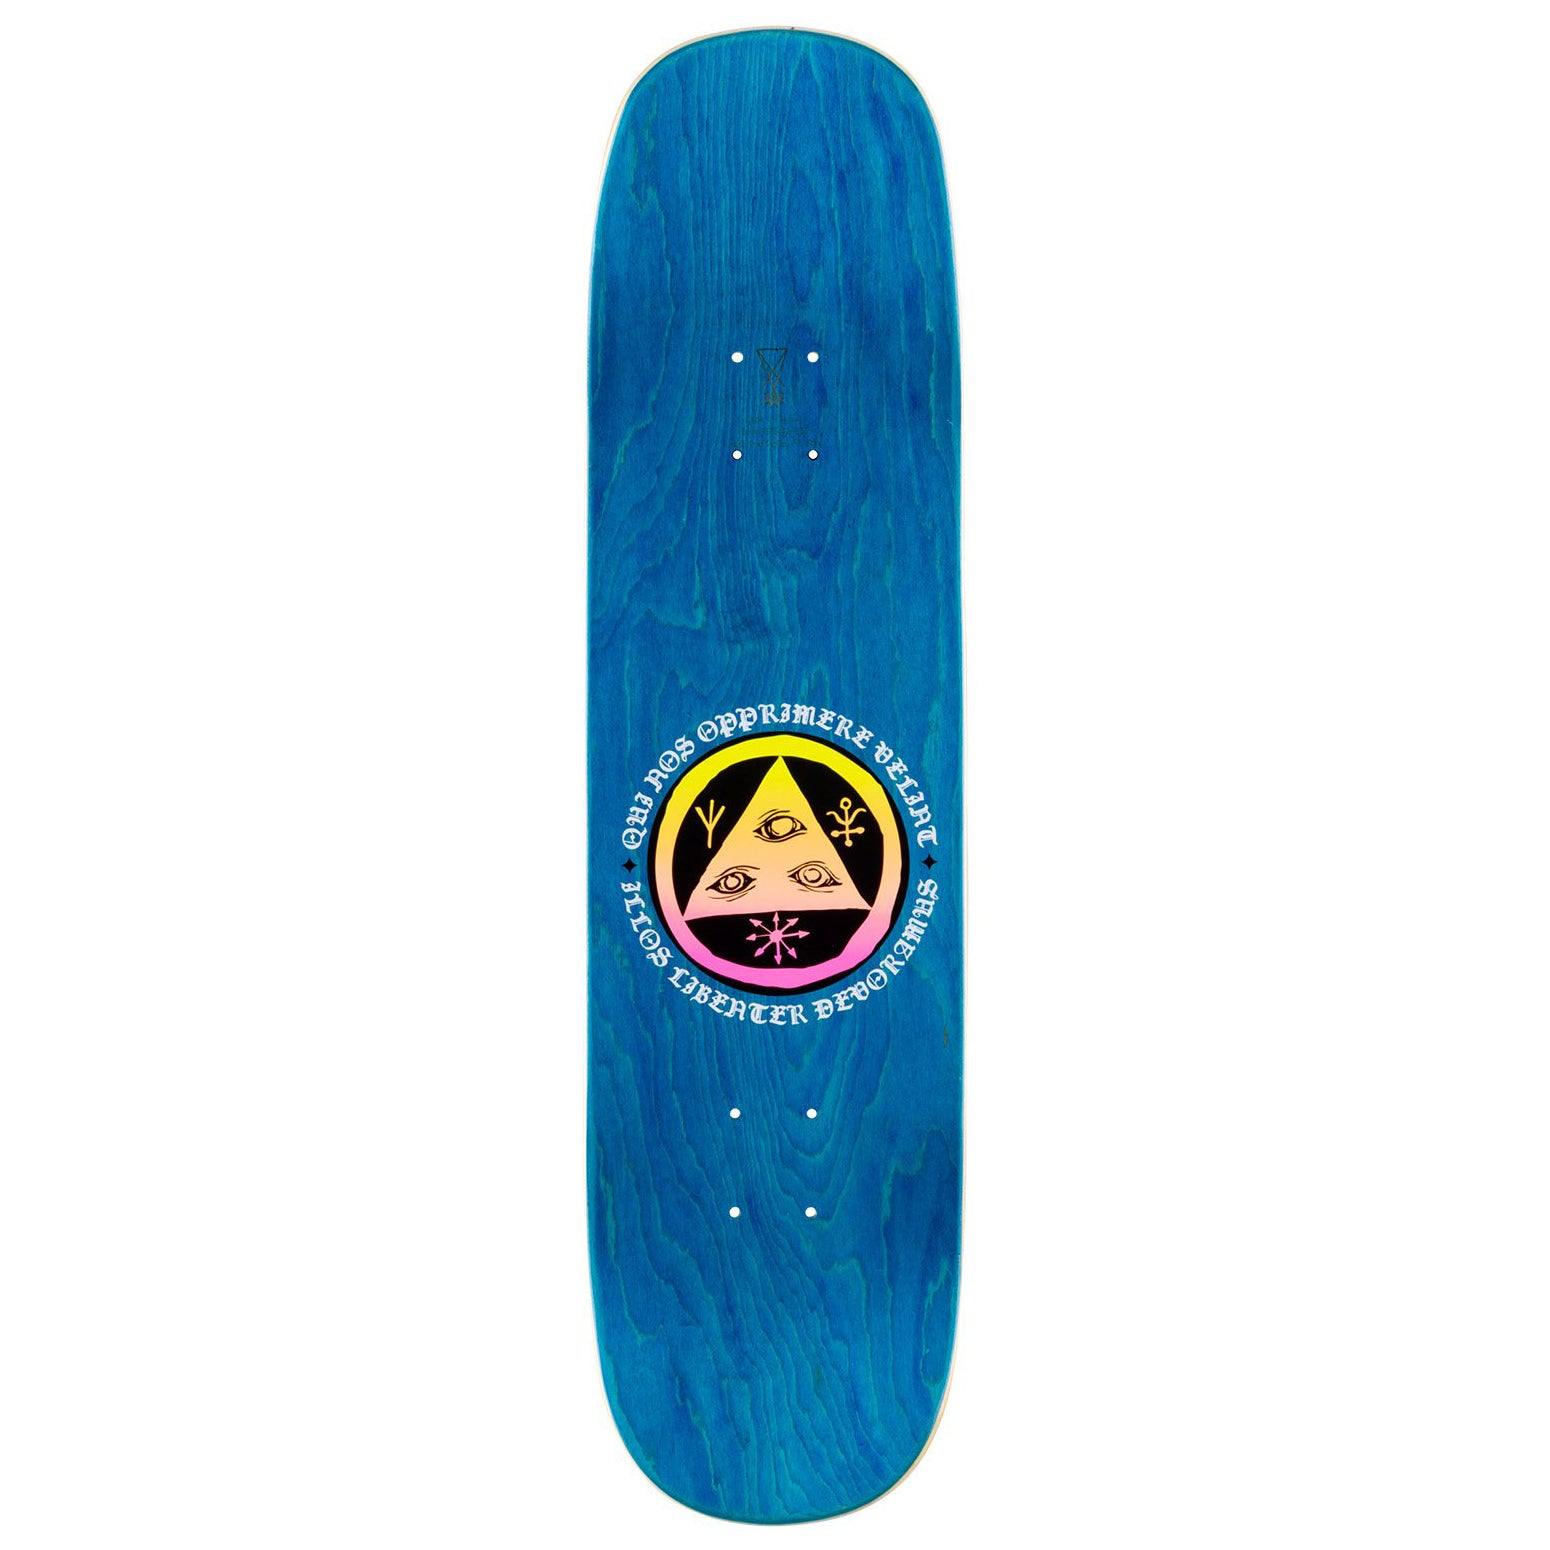 Welcome Seahorse 2 On Amulet White/Prism Deck 8.125""